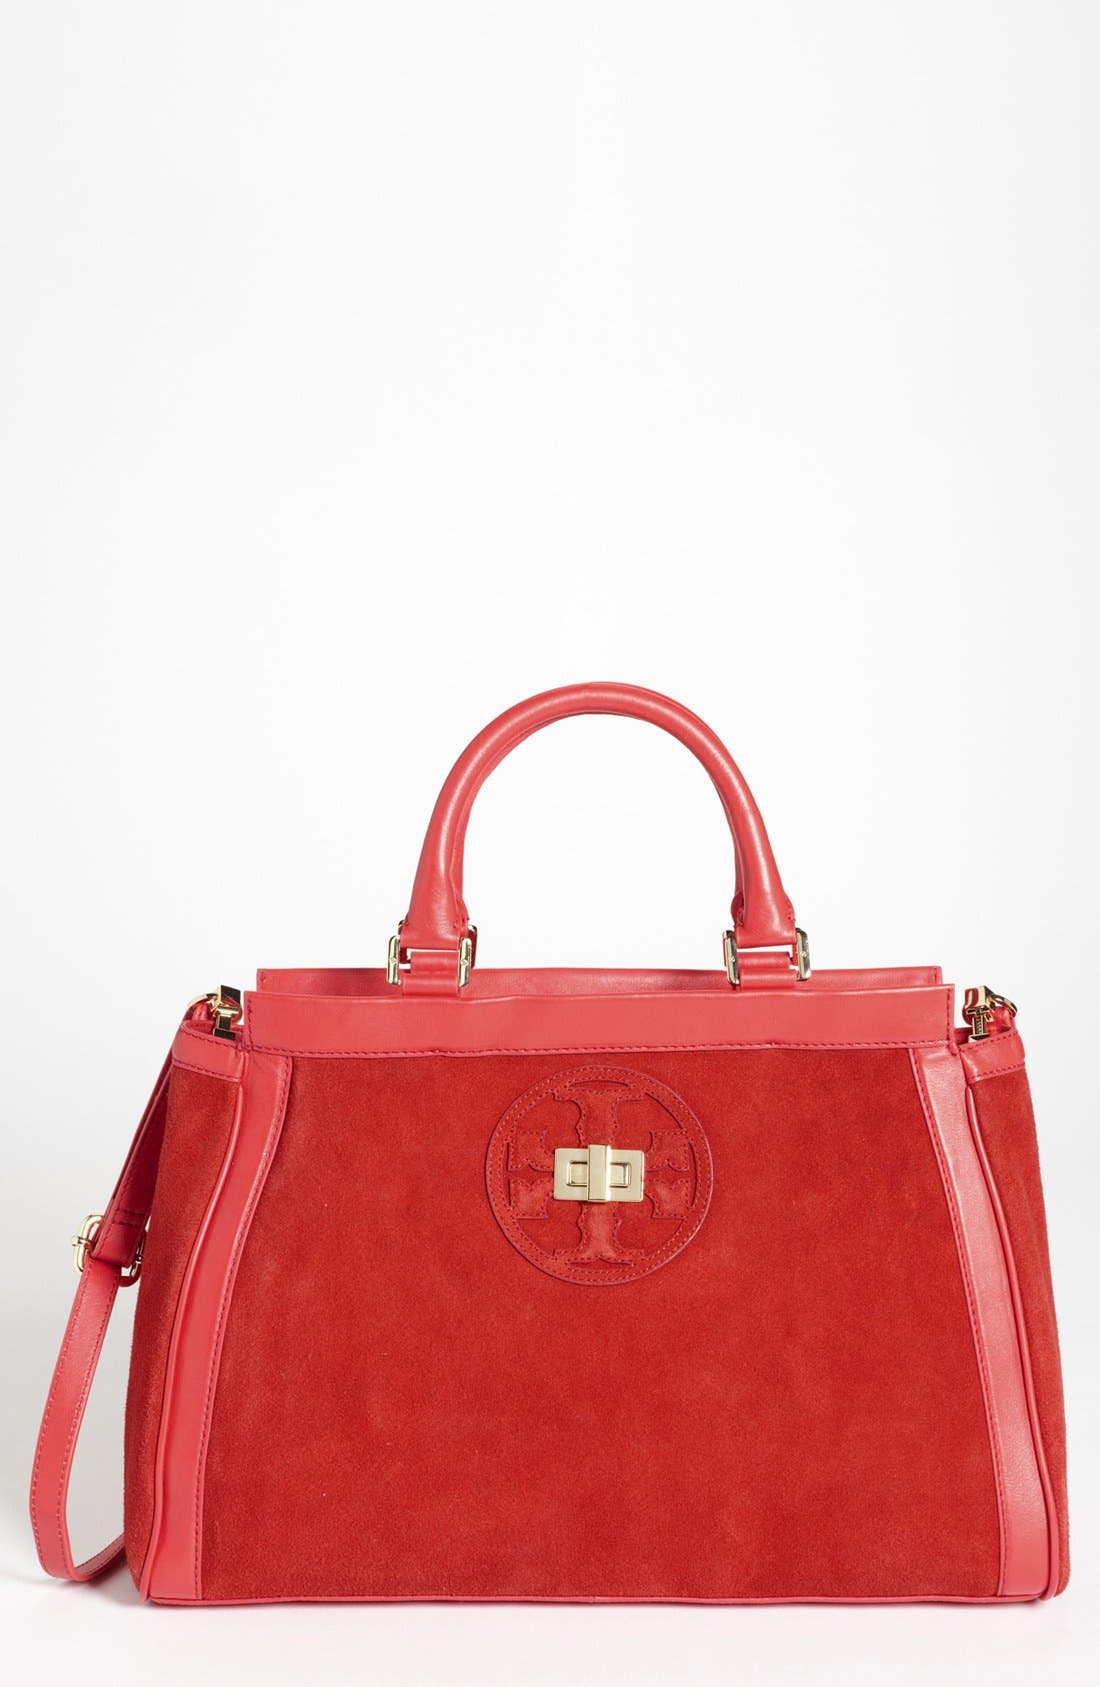 Main Image - Tory Burch 'Gloria' Satchel